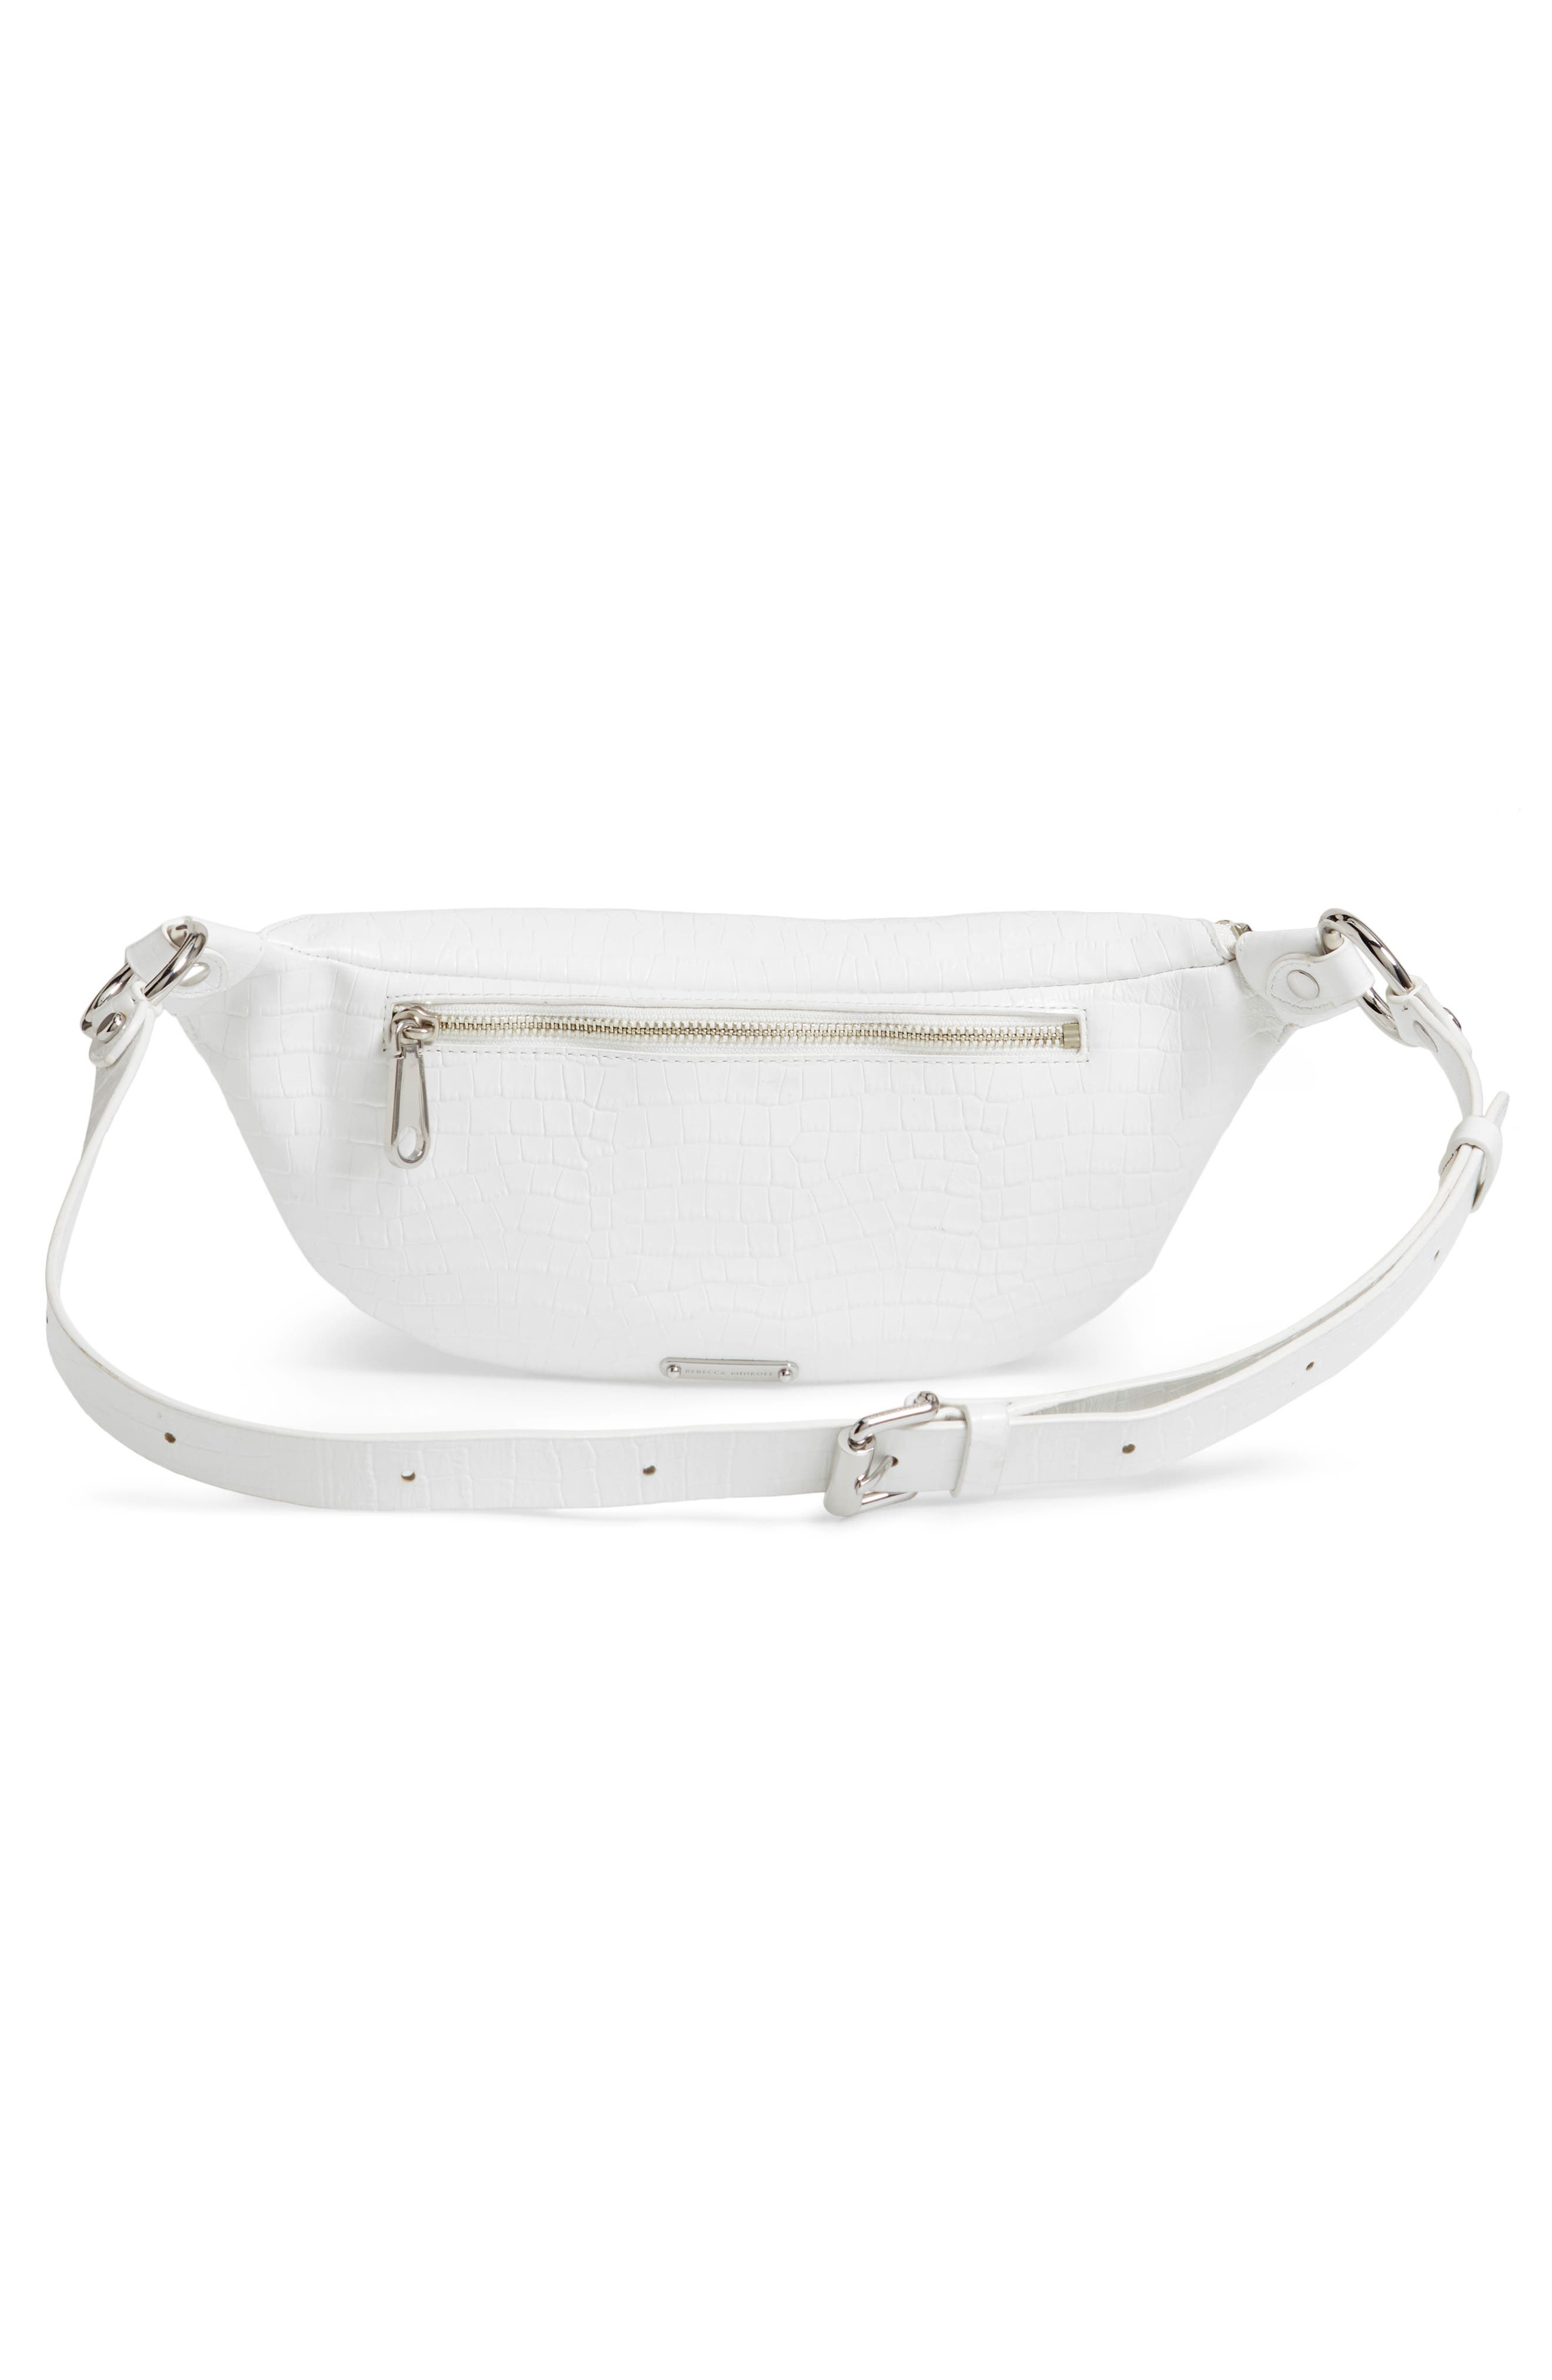 REBECCA MINKOFF, Bree Croc Embossed Leather Belt Bag, Alternate thumbnail 5, color, OPTIC WHITE